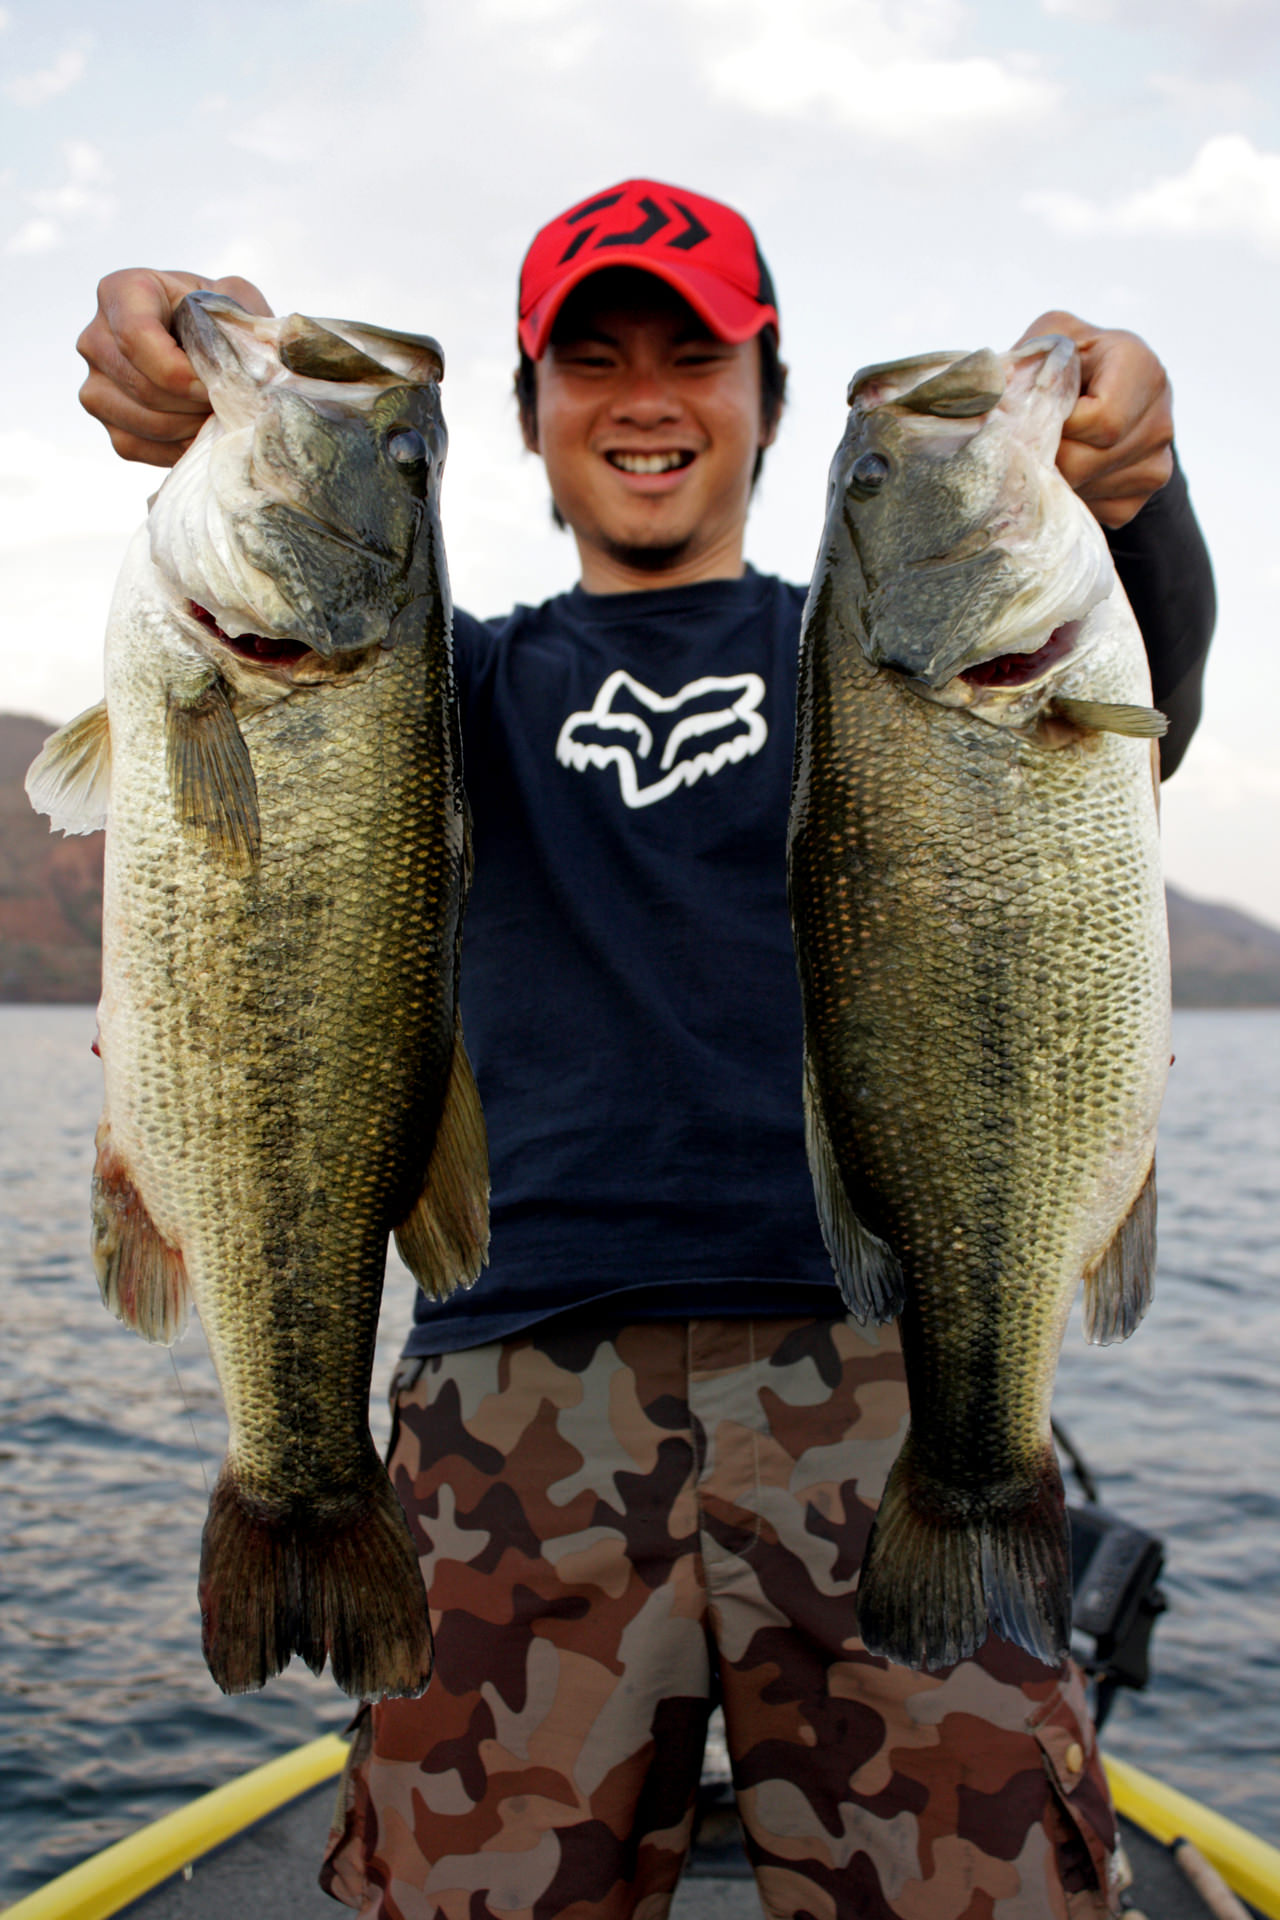 Fish it at the right conditions, the rewards of throwing a swimbait for the day can be amazing.